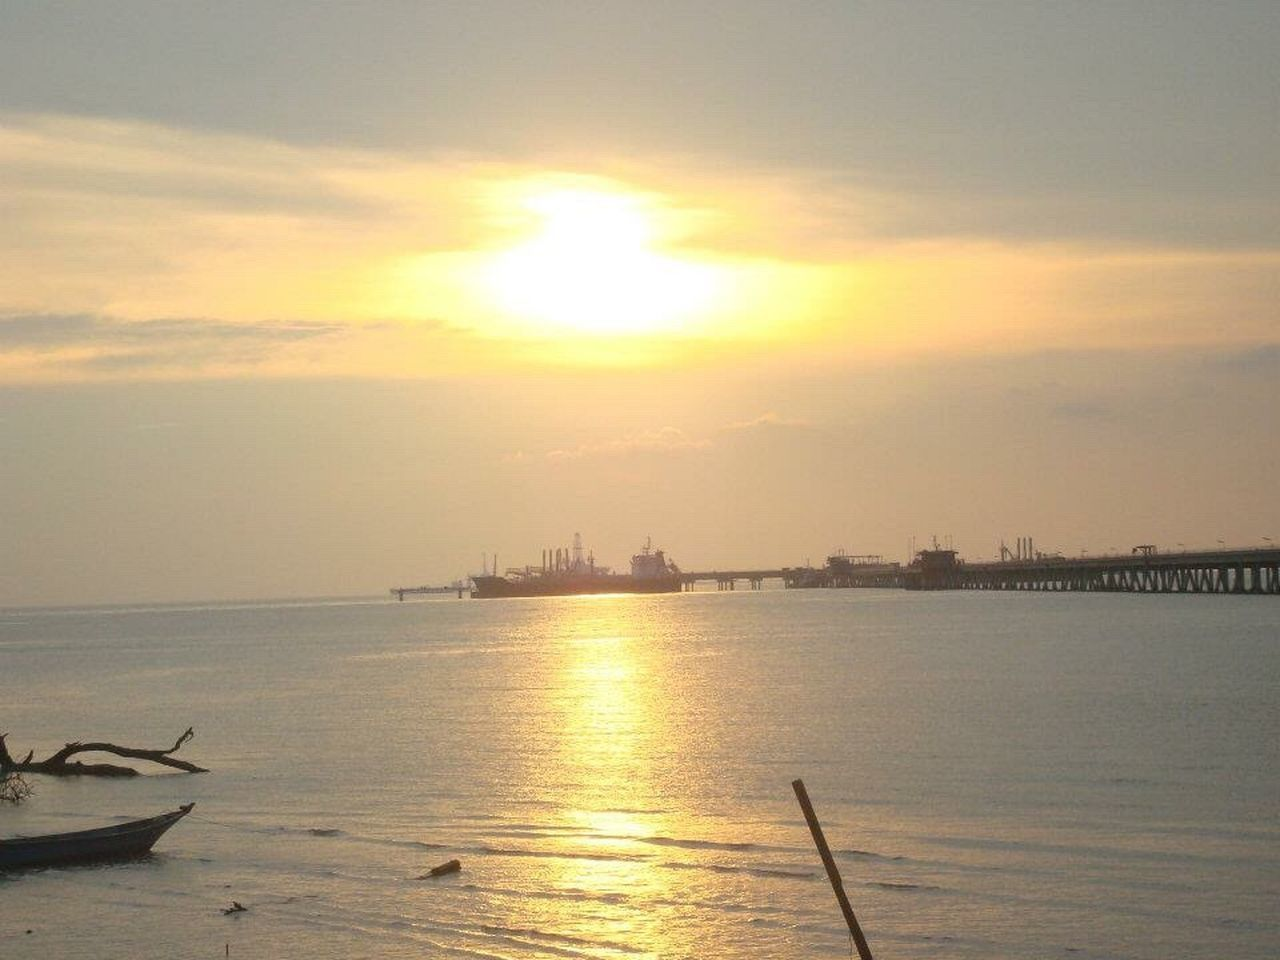 sunset, water, transportation, mode of transport, nautical vessel, nature, sun, sea, sky, sunlight, beauty in nature, outdoors, no people, scenics, horizon over water, day